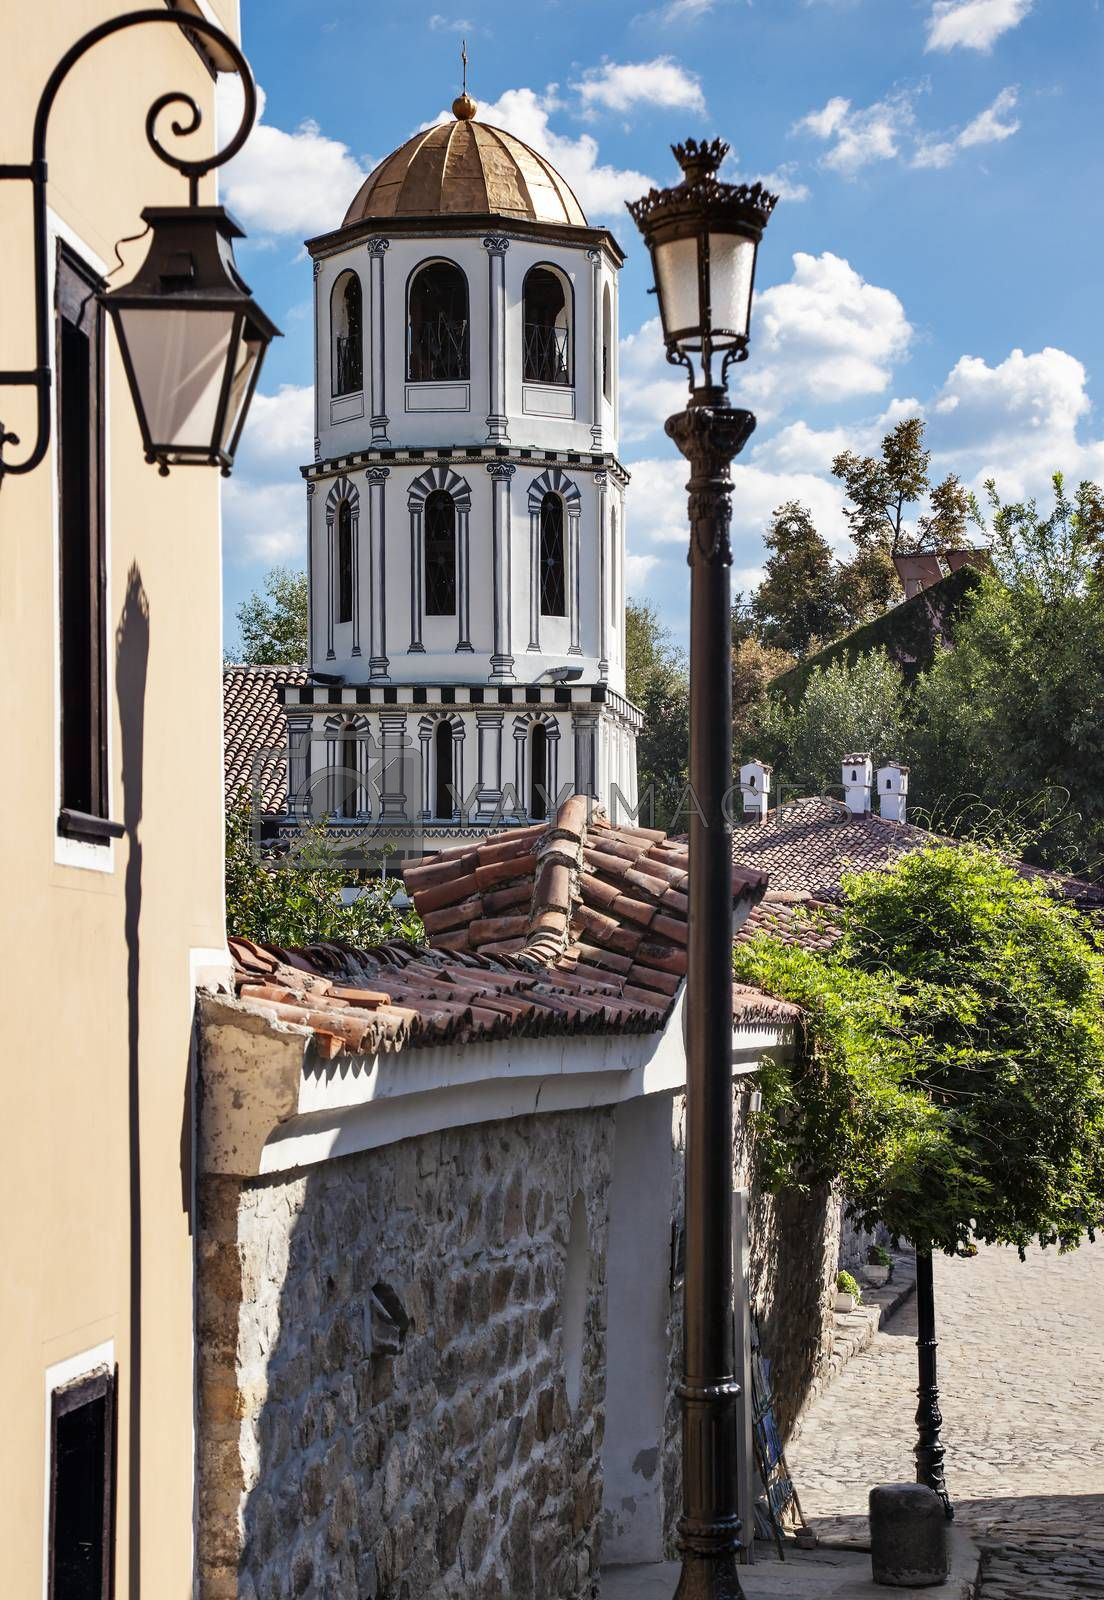 St. St. Constantine and Helena church view in old town of Plovdiv, Bulgaria, Europe.